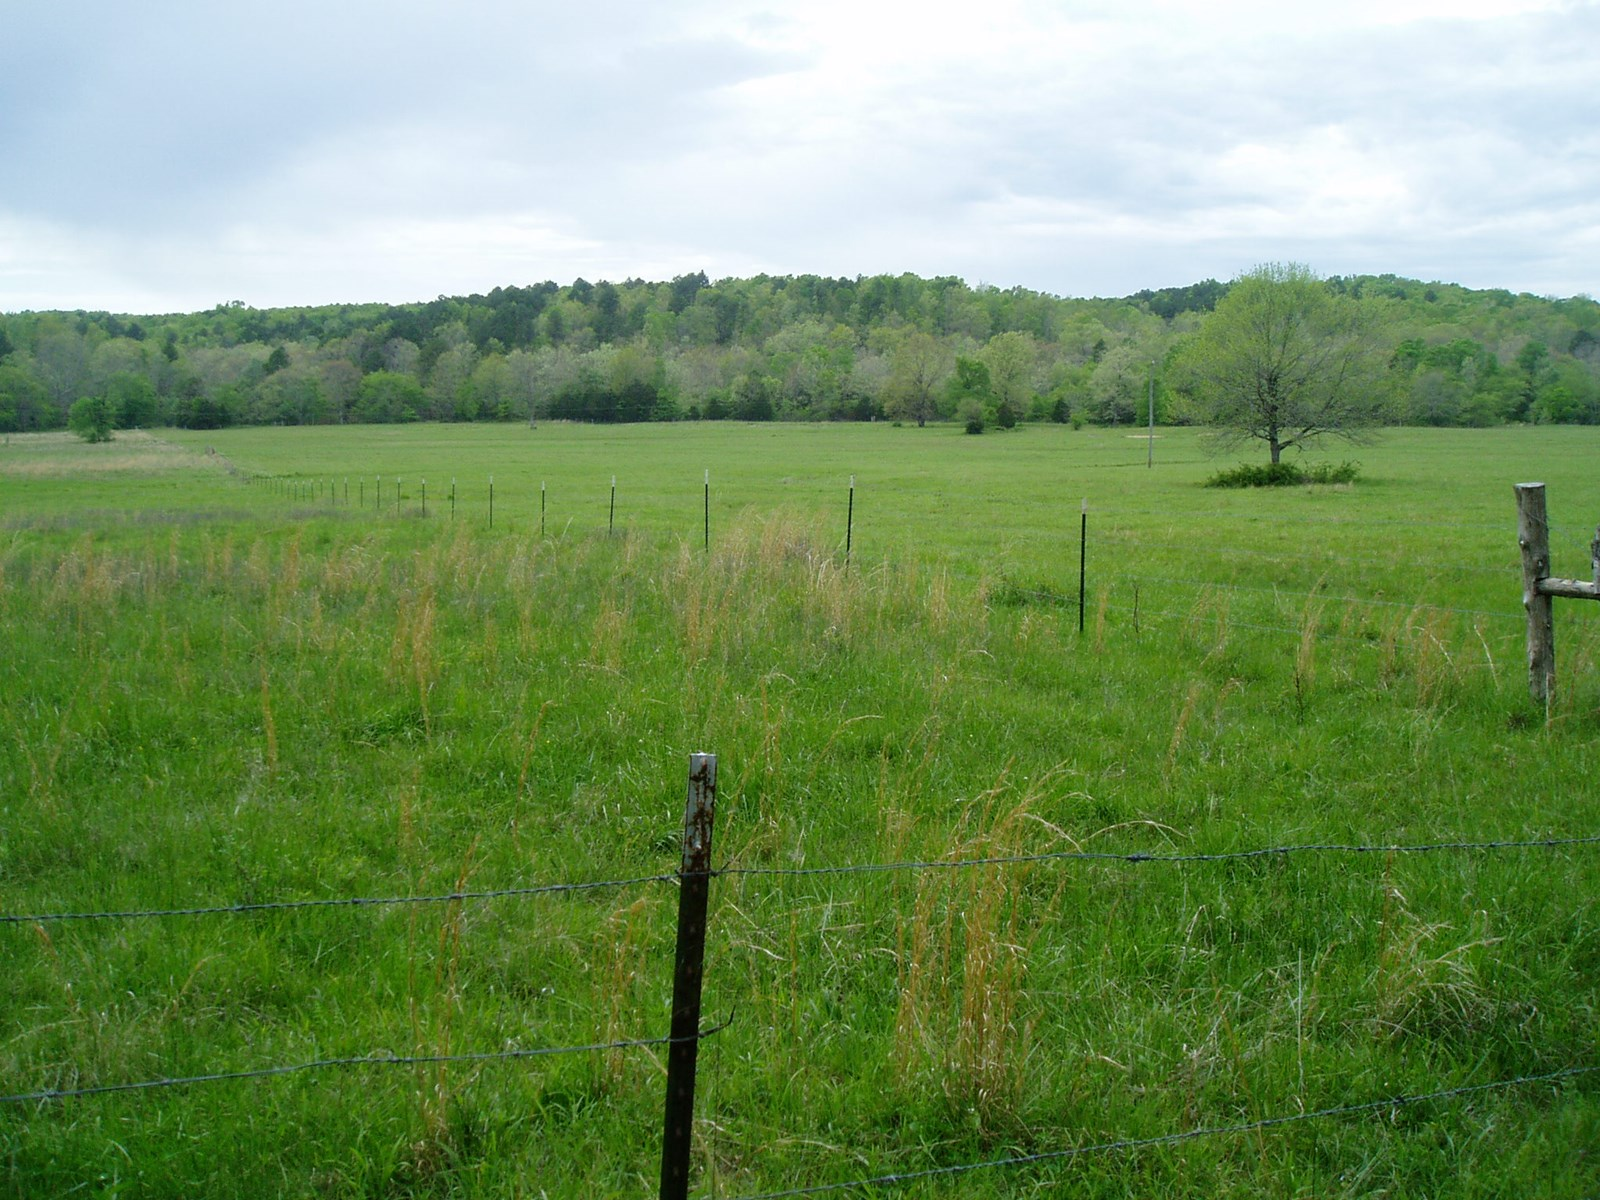 If you are looking for a place to build a house with acreage